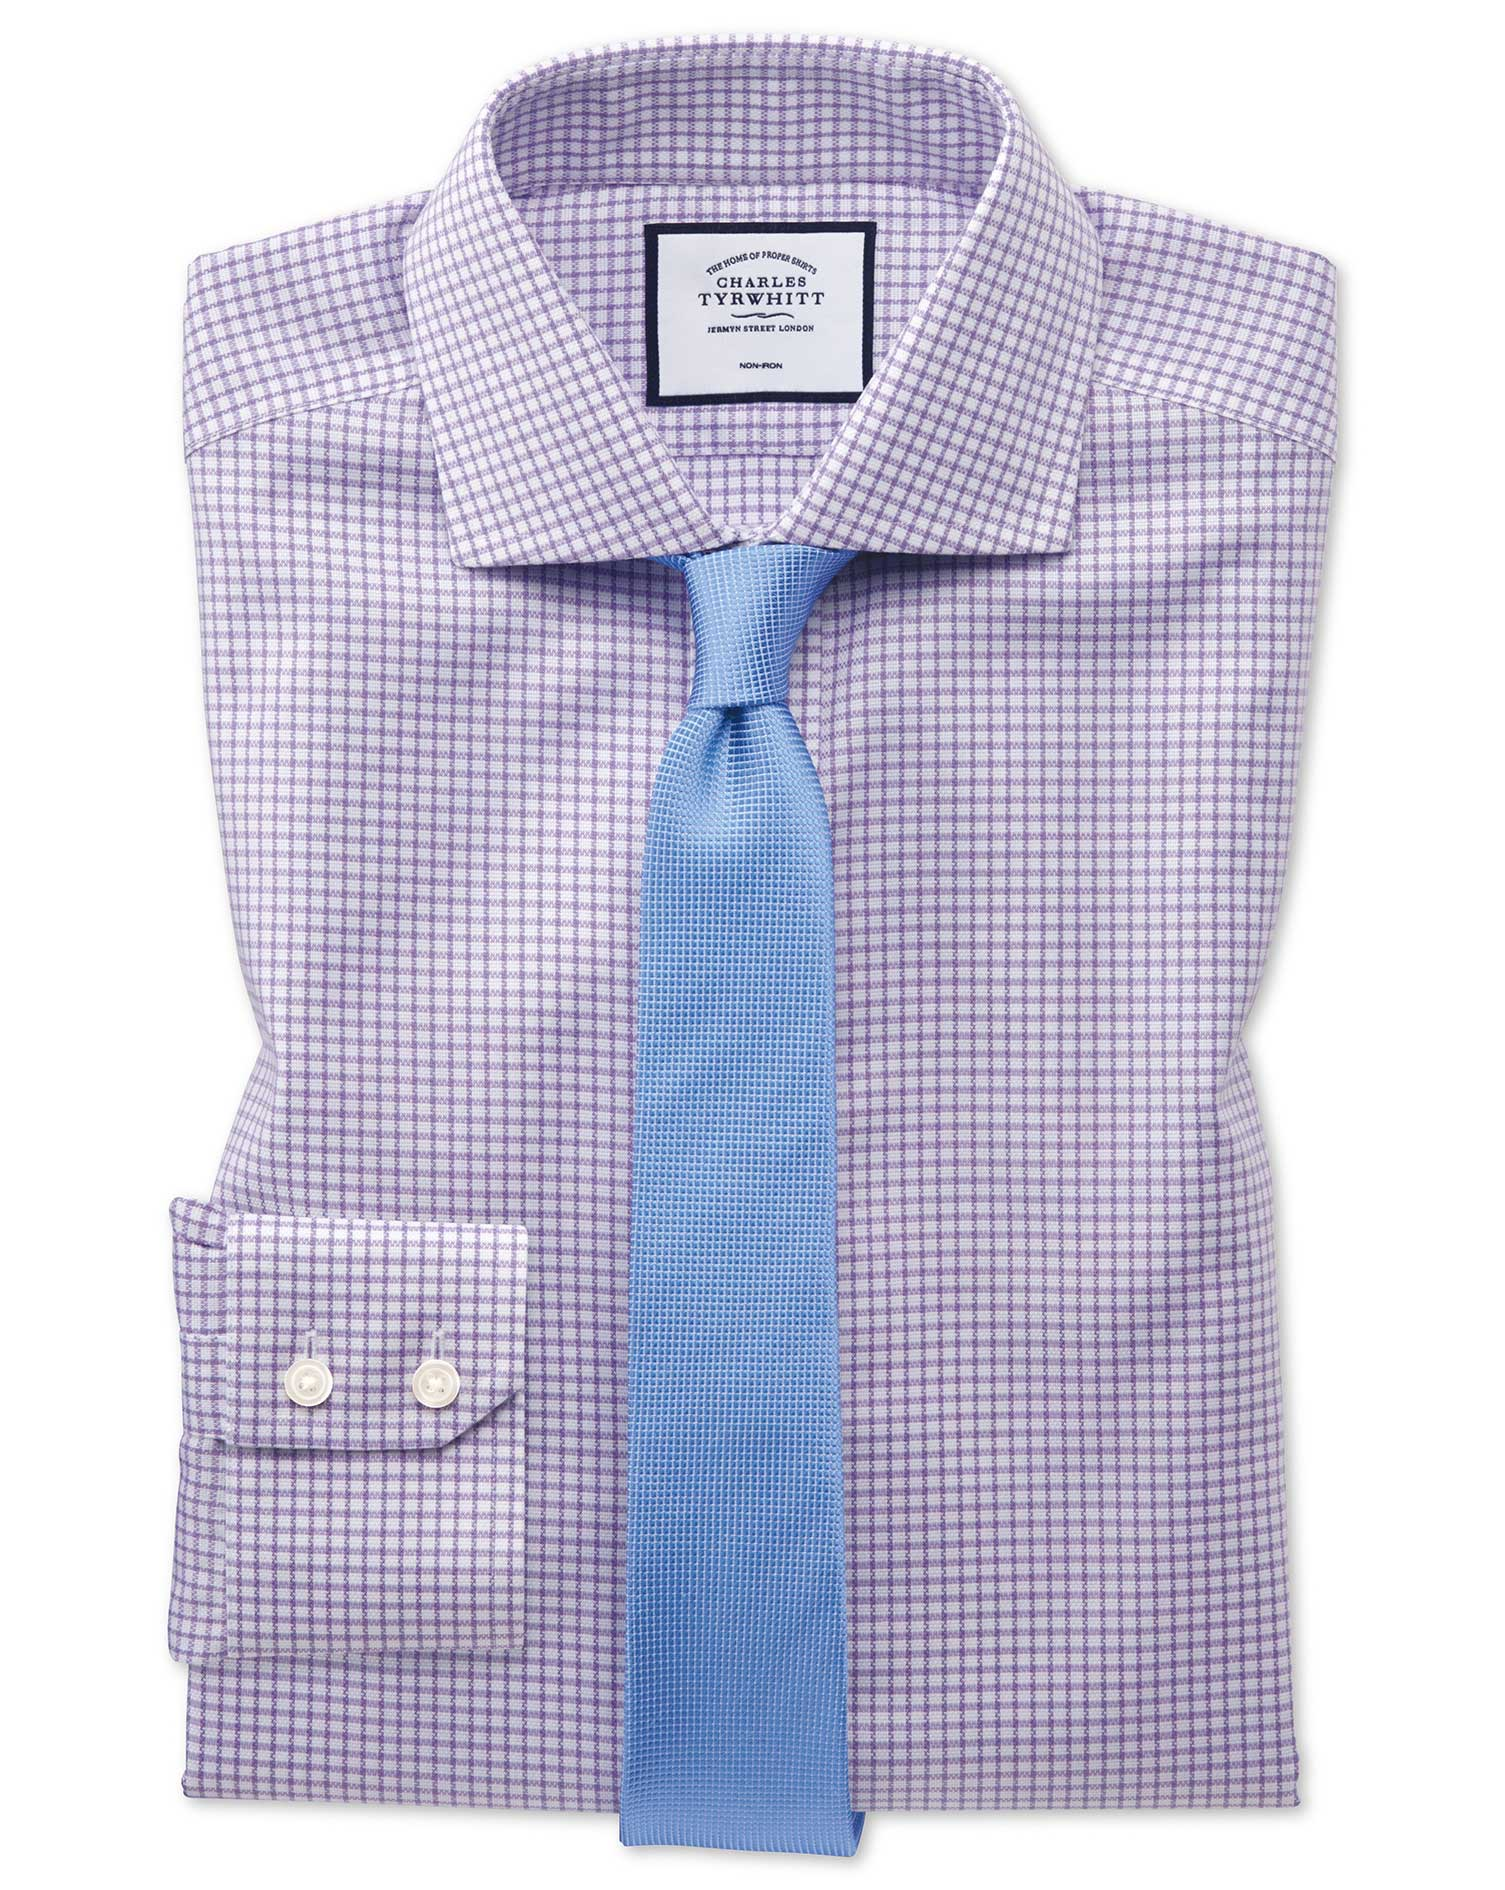 Cotton Extra Slim Fit Non-Iron Lilac Grid Check Oxford Stretch Shirt